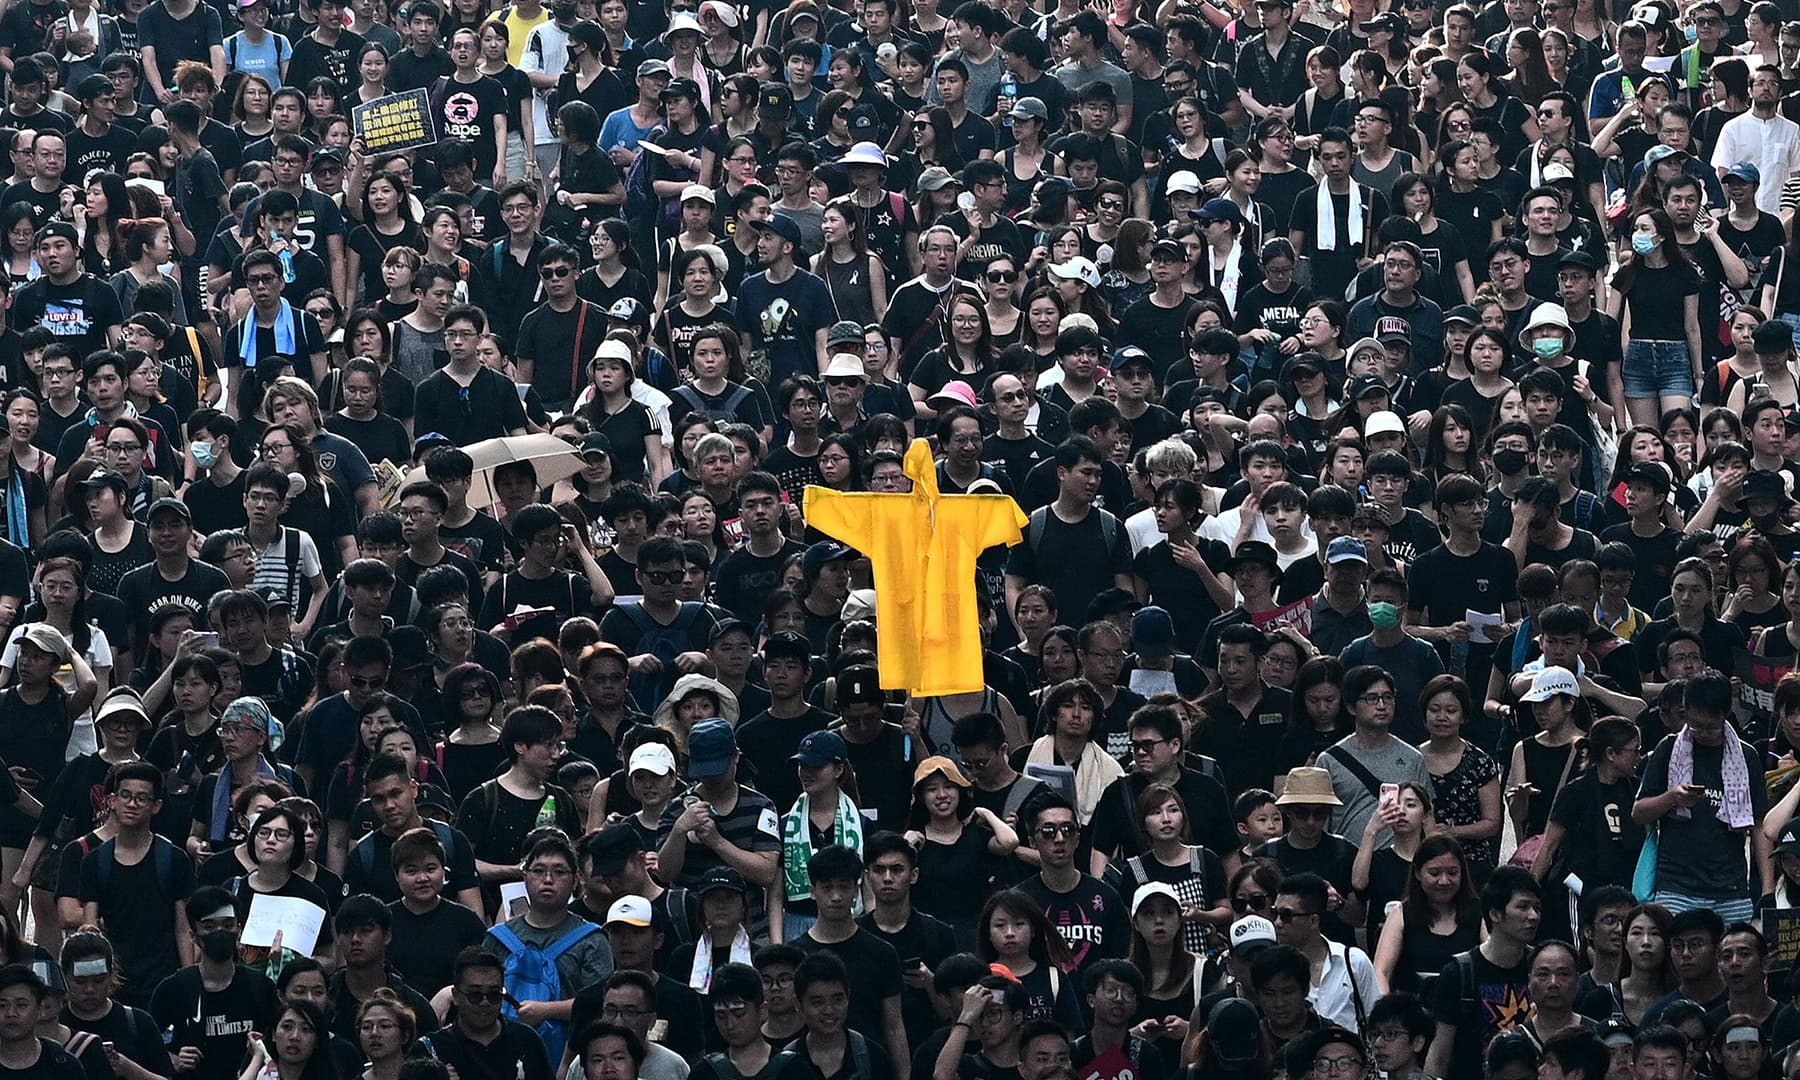 Protesters hold up a yellow raincoat in memory of a fellow protester who fell to his death the night before as they march at new rally against a controversial extradition law proposal in Hong Kong on June 16. — AFP